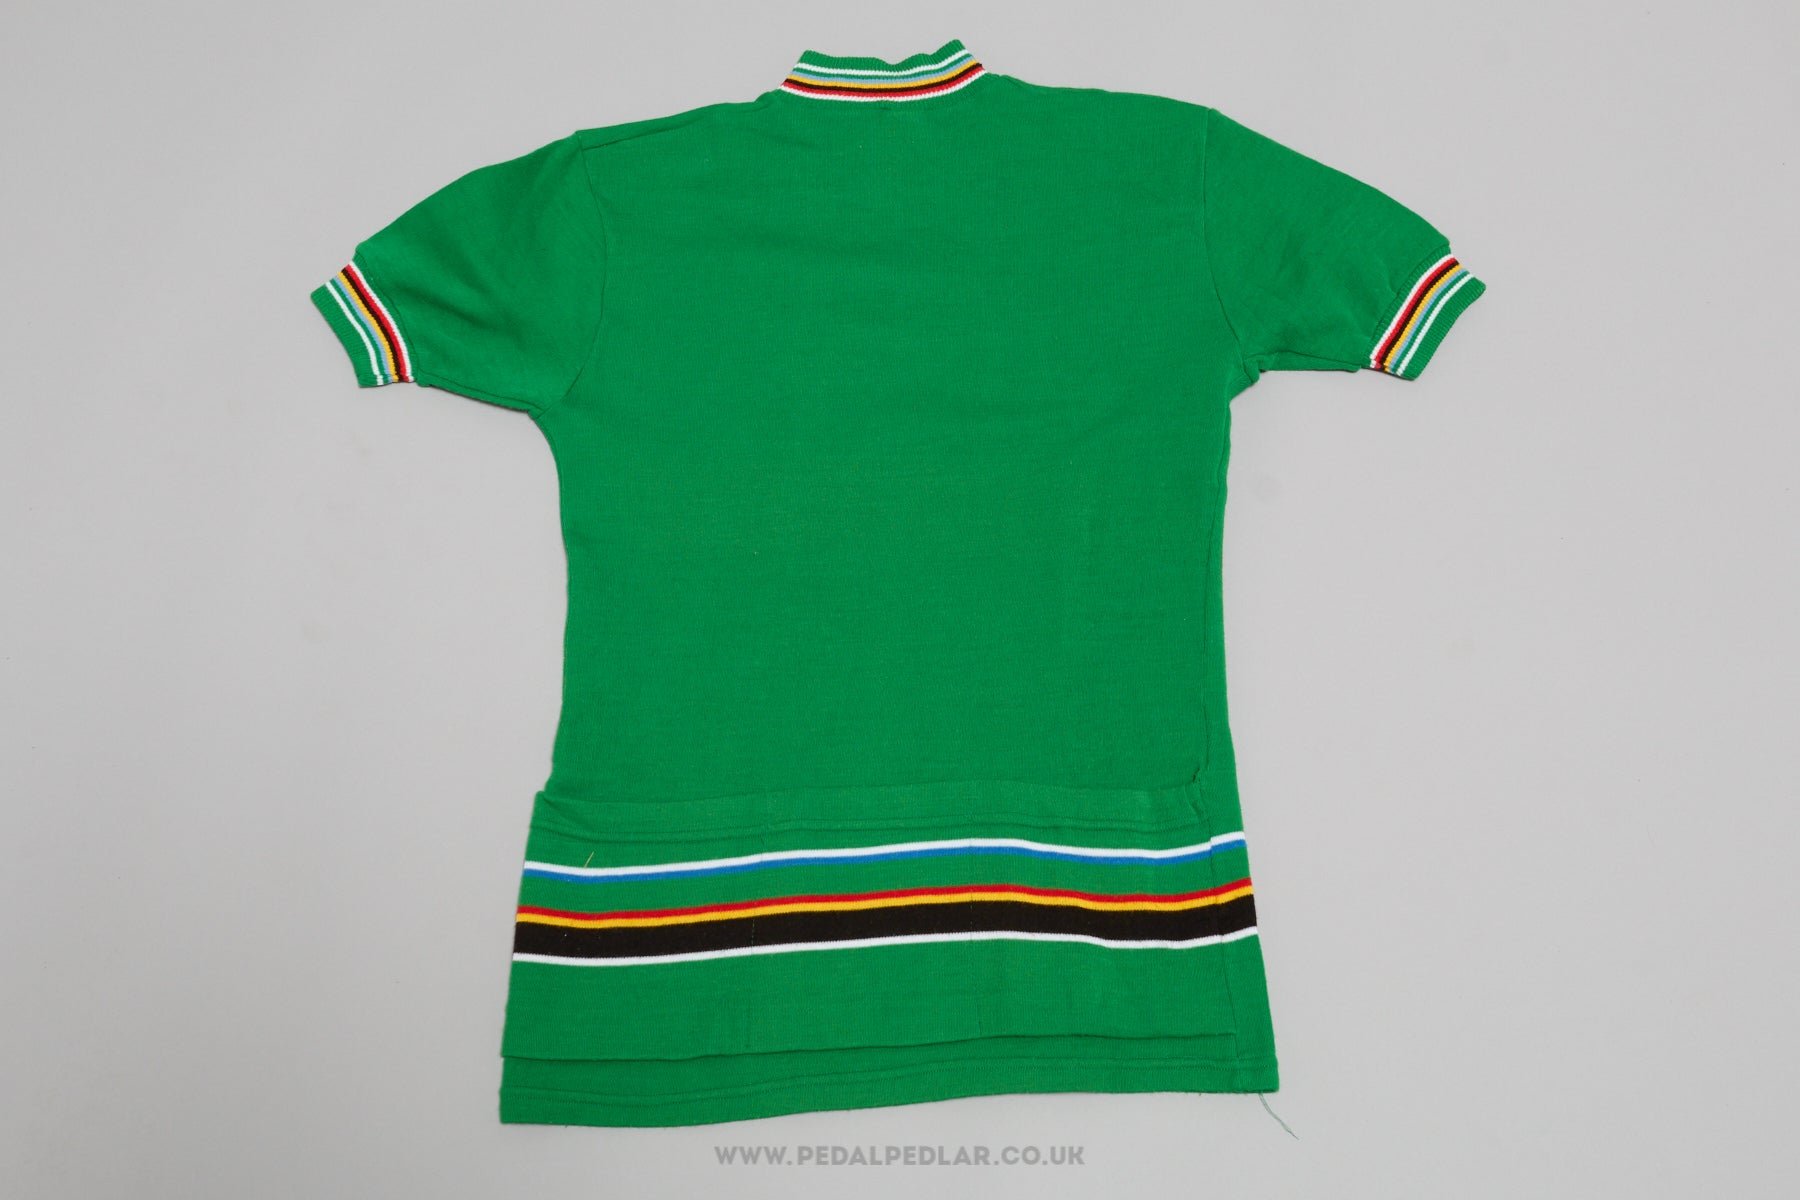 44fdf7c85 Unbranded NOS - Woollen Style Cycling Jersey